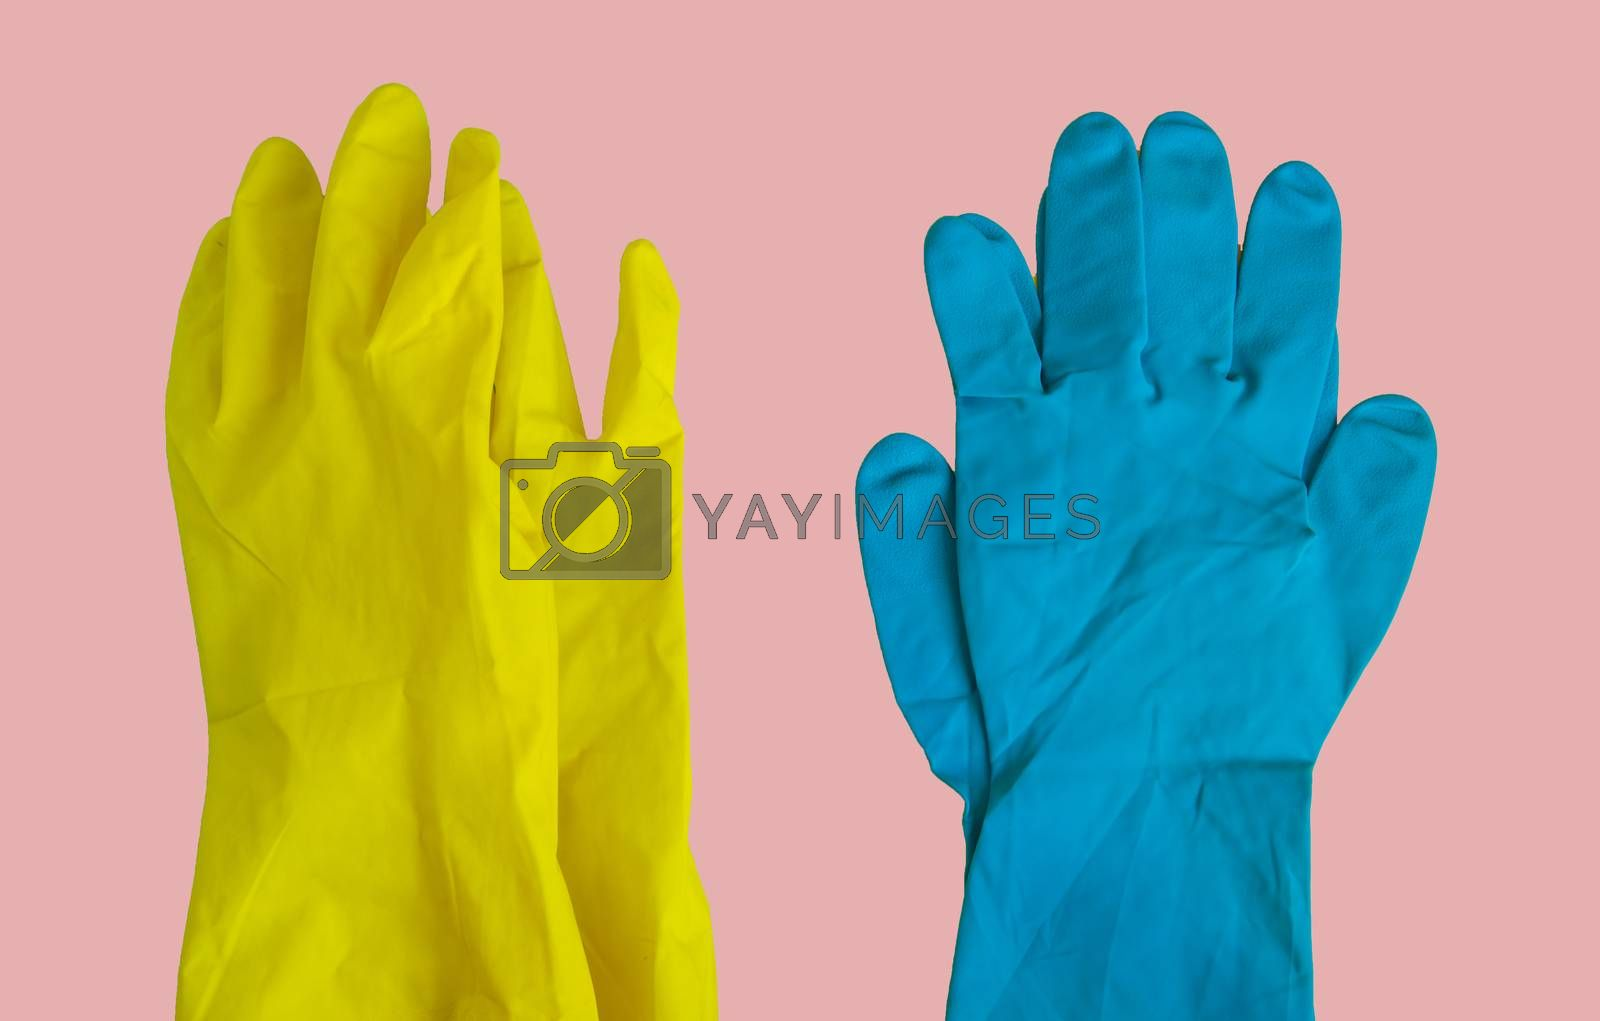 Top view of yellow and blue rubber protective gloves on pink table for spring or daily cleaning. The concept of a commercial cleaning company. by Claire Lucia